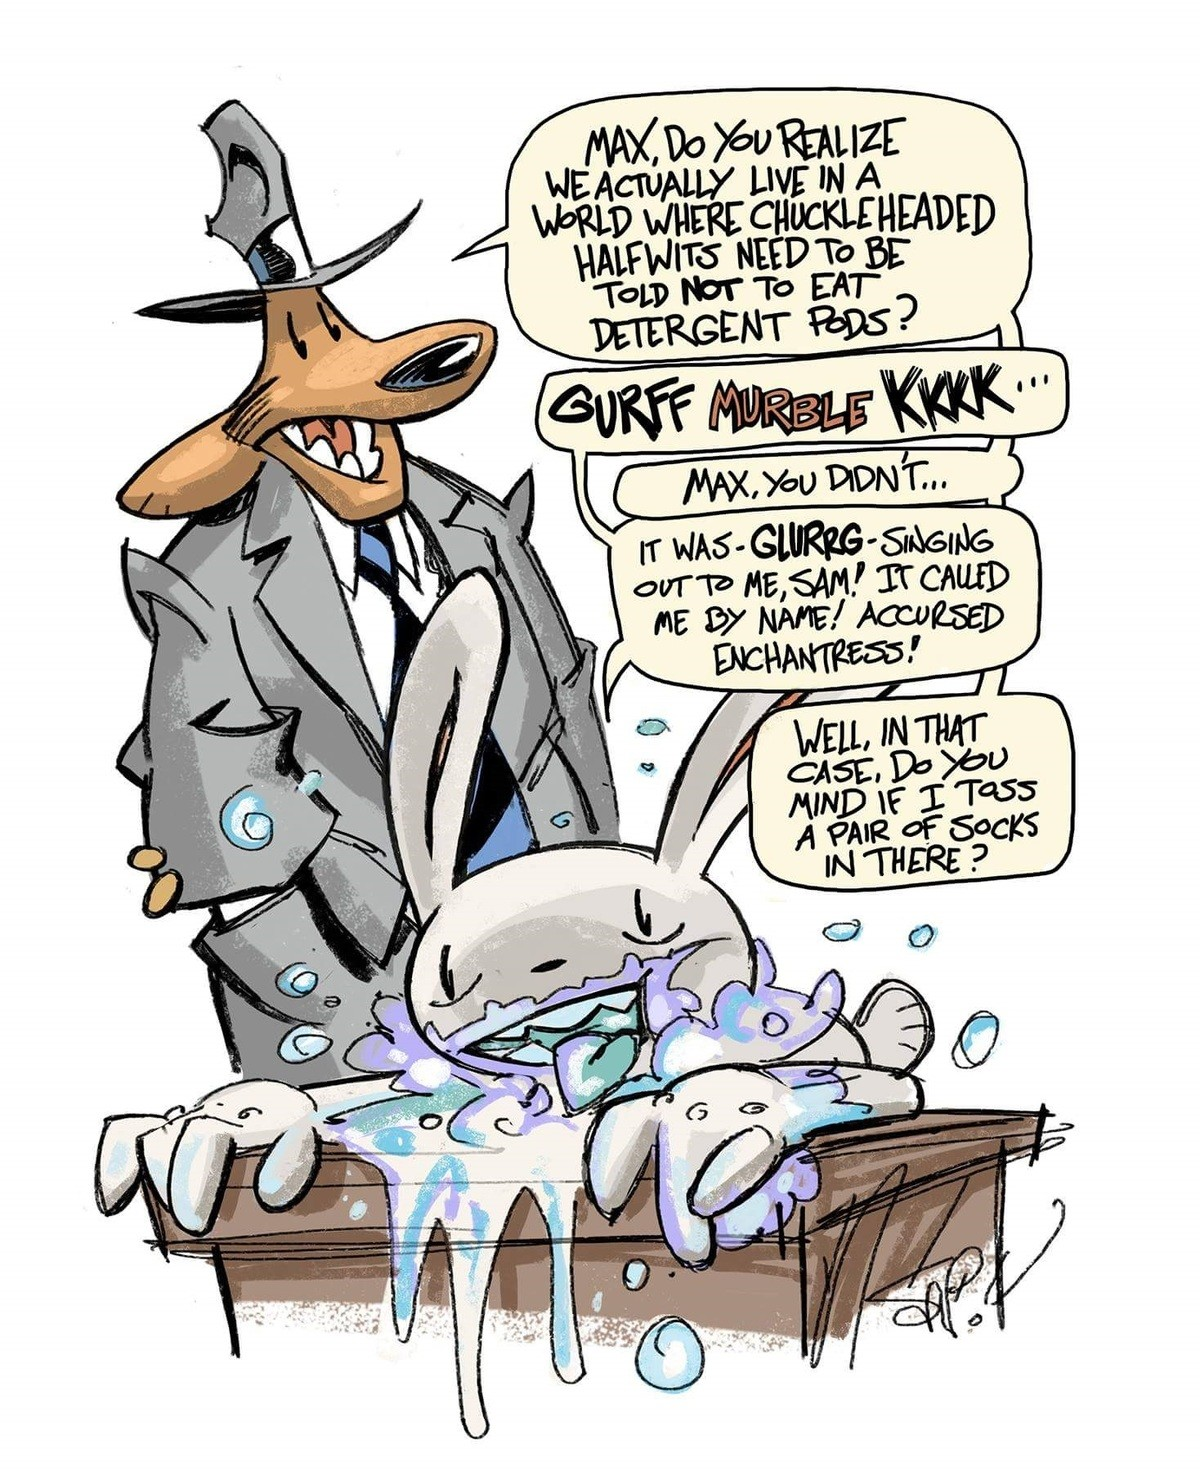 """He's clean. . bl mm NEED To 5; T Mr TO DAT"""" as 97 NAME! Among, -D A Phutt of Socks THERE ?. God, I miss Sam and Max. They actually had good humor. Even in the Poker Night at the Inventory games, which were lackluster in my opinion."""